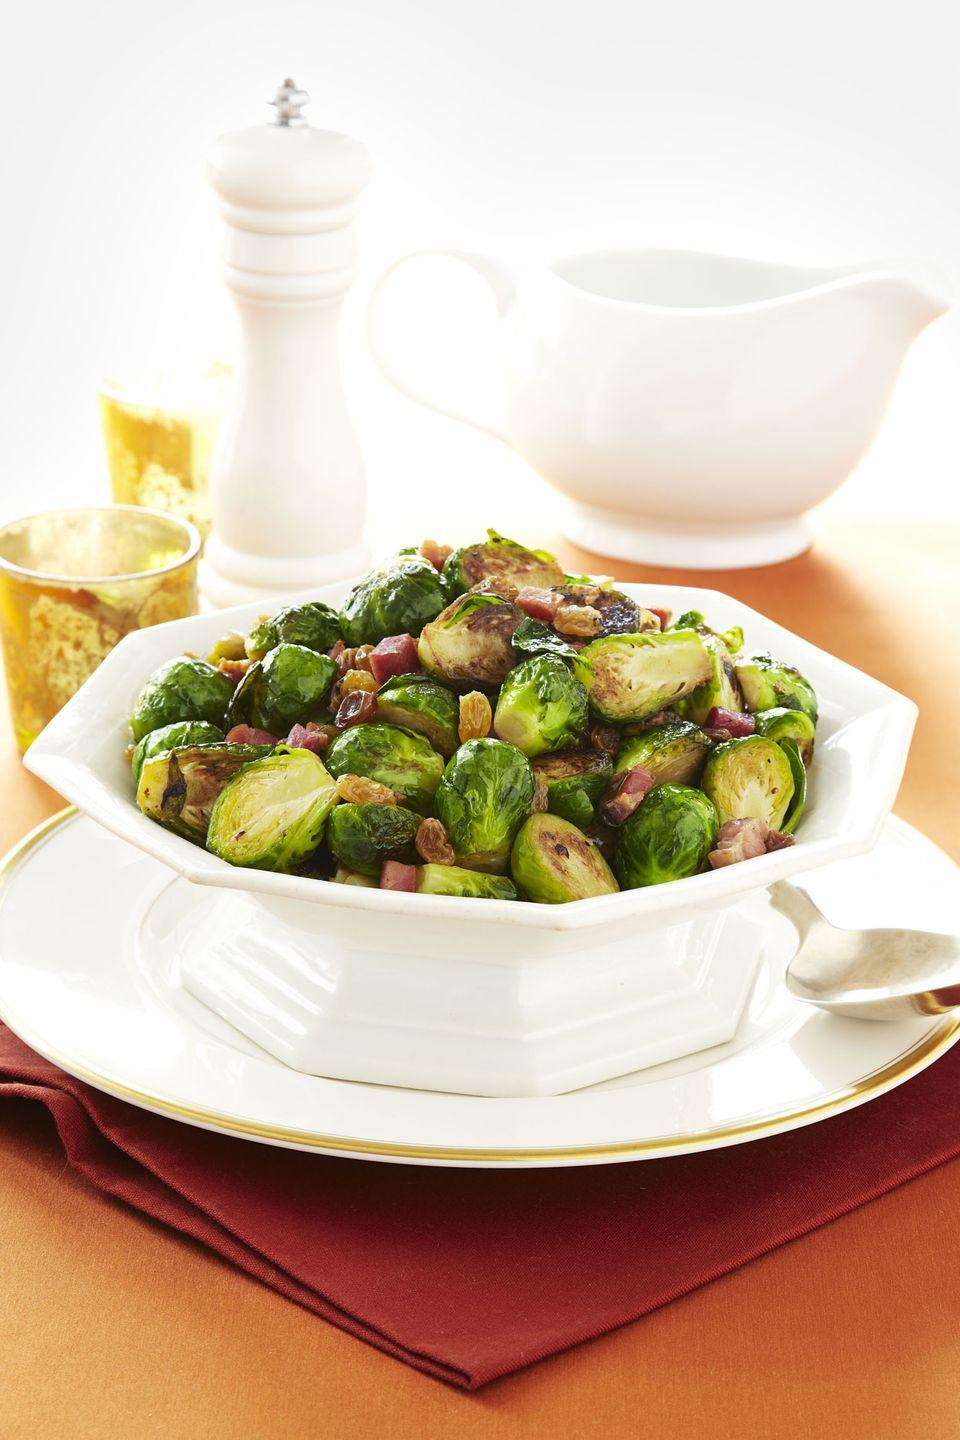 "<p>The addition of bacon will help convert any Brussels sprouts haters in this easy veggie side. Or, be super fancy like Ina and use pancetta.</p><p><em><a href=""https://www.goodhousekeeping.com/food-recipes/a11079/brussels-sprouts-lardons-recipe-ghk1111/"" rel=""nofollow noopener"" target=""_blank"" data-ylk=""slk:Get the recipe for Brussels Sprouts Lardons »"" class=""link rapid-noclick-resp"">Get the recipe for Brussels Sprouts Lardons »</a></em></p><p><strong>RELATED: </strong><a href=""https://www.goodhousekeeping.com/holidays/thanksgiving-ideas/g1202/thanksgiving-side-dishes/"" rel=""nofollow noopener"" target=""_blank"" data-ylk=""slk:40 Thanksgiving Side Dishes That Will Steal the Show"" class=""link rapid-noclick-resp"">40 Thanksgiving Side Dishes That Will Steal the Show</a></p>"